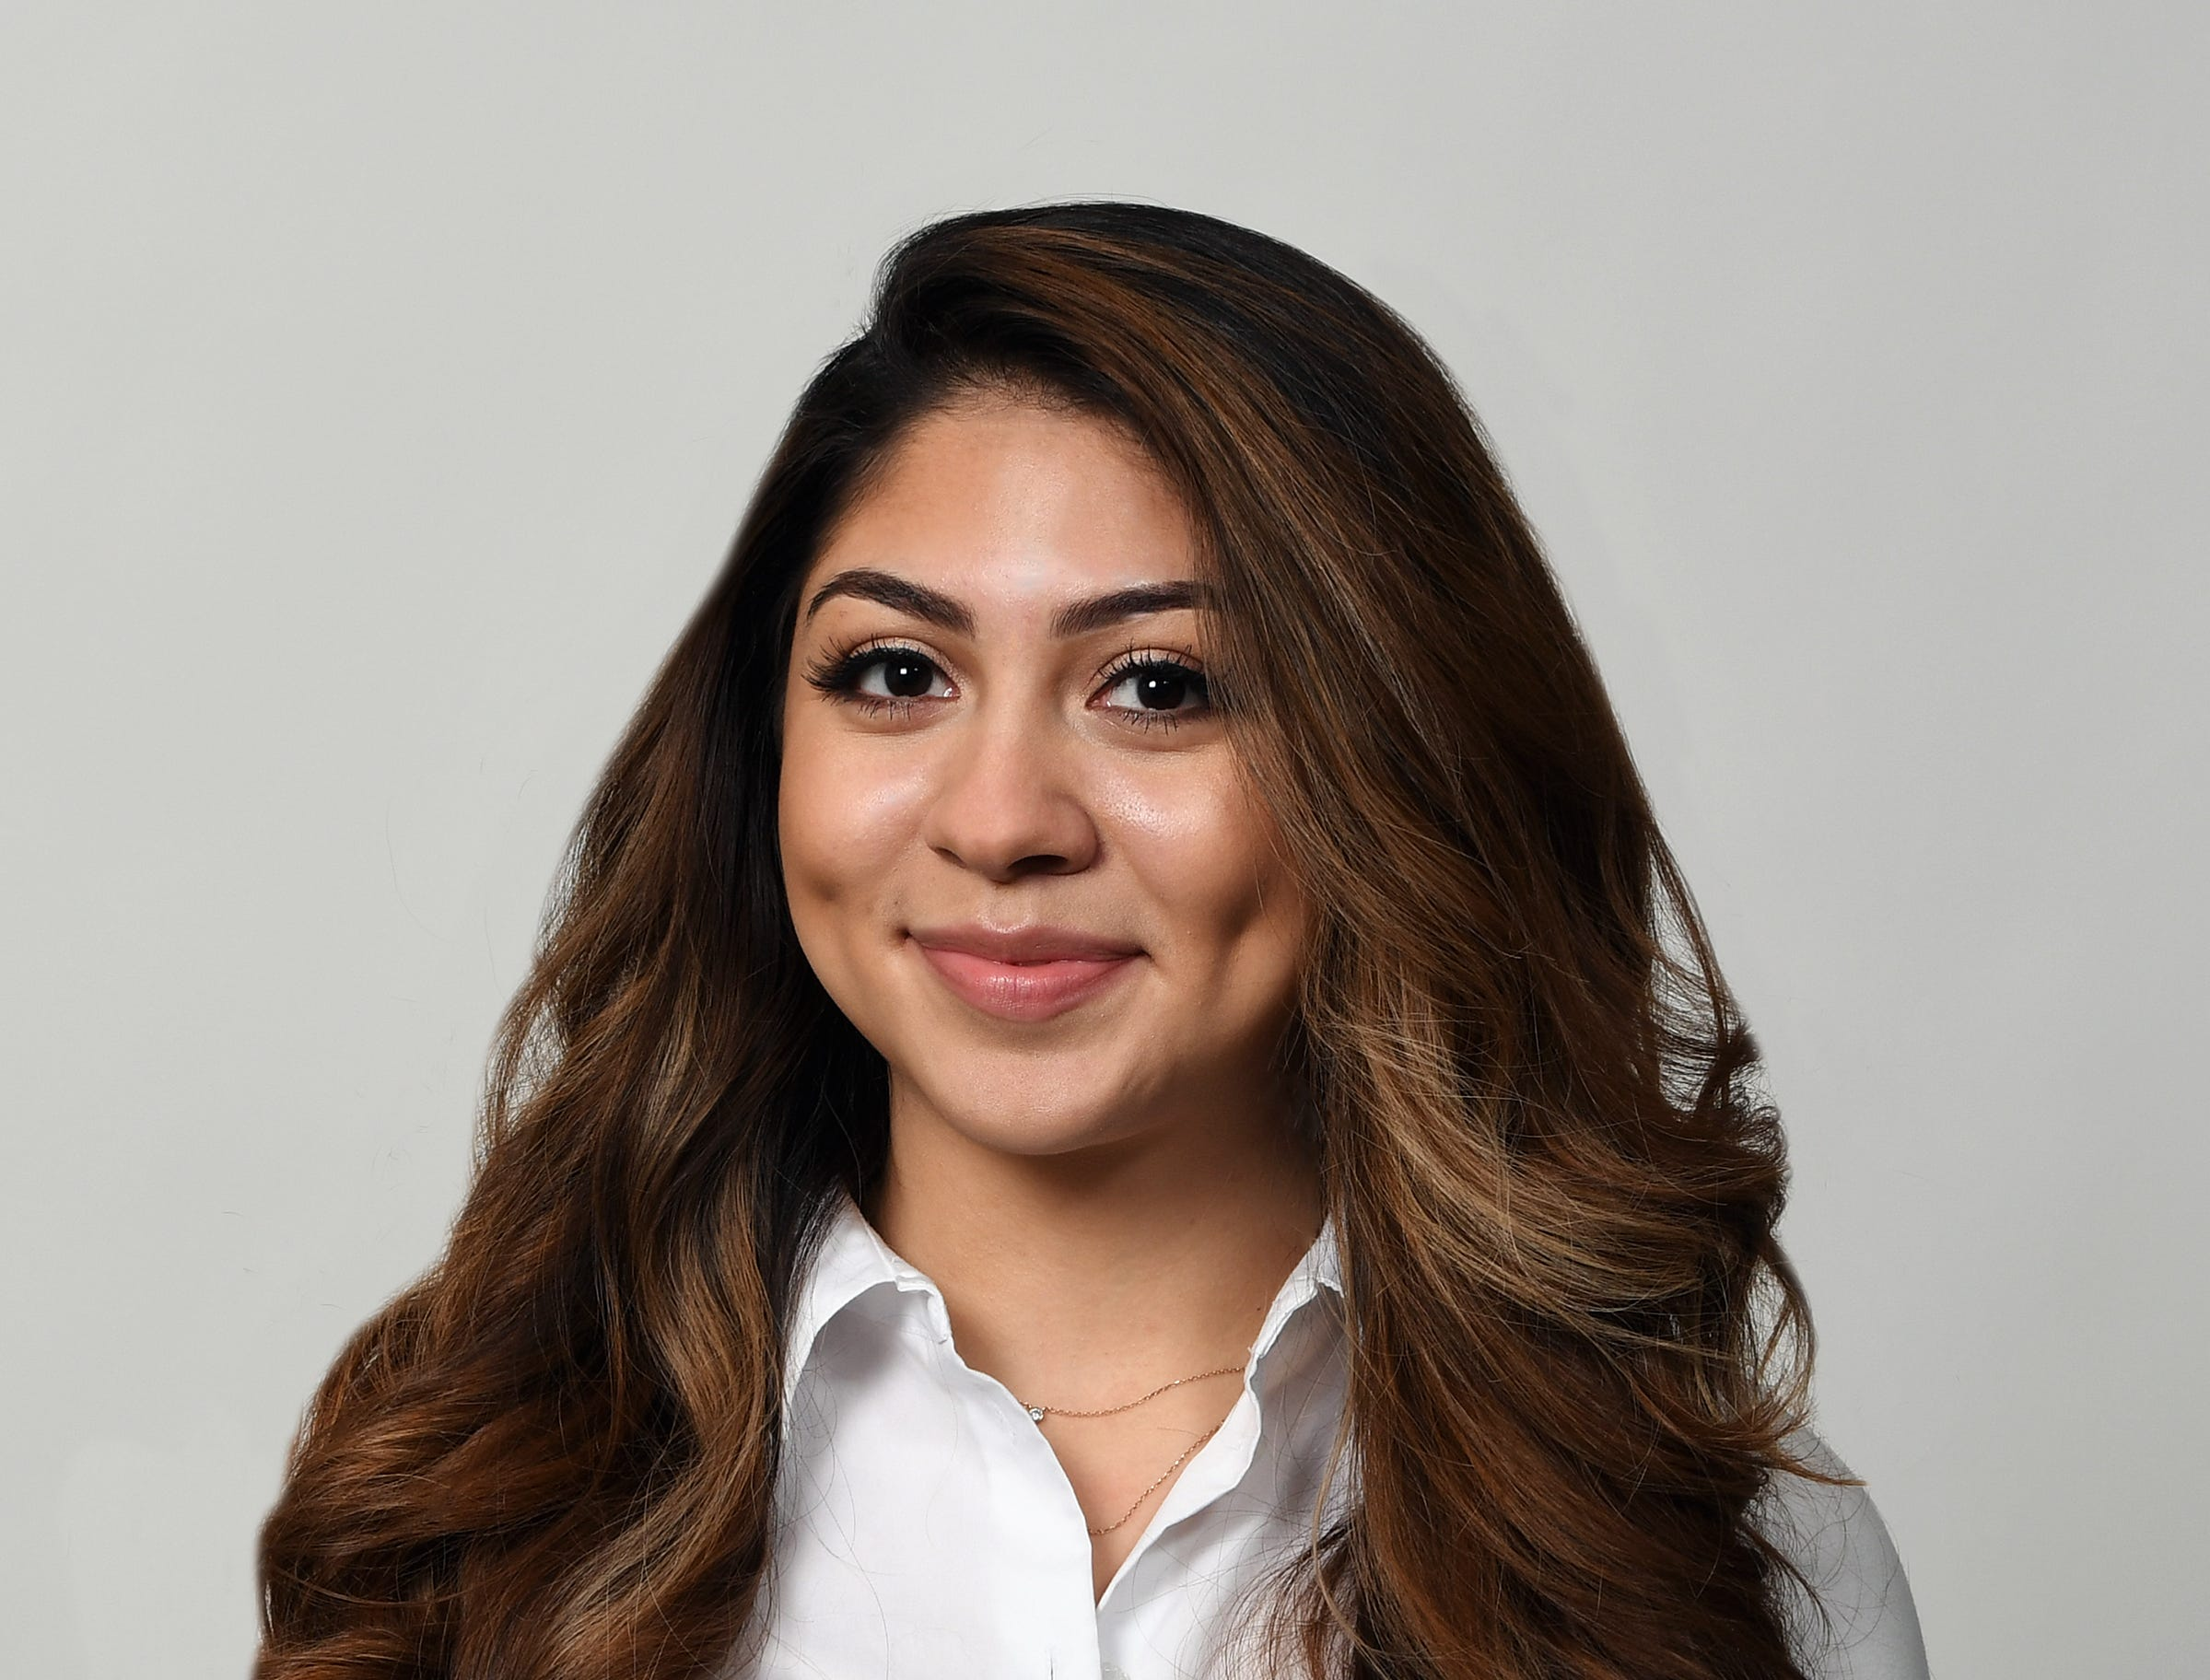 Cassandra Pulido, Indianapolis, a graduate of Lawrence North High School and a junior at Indiana University majoring in marketing and international business